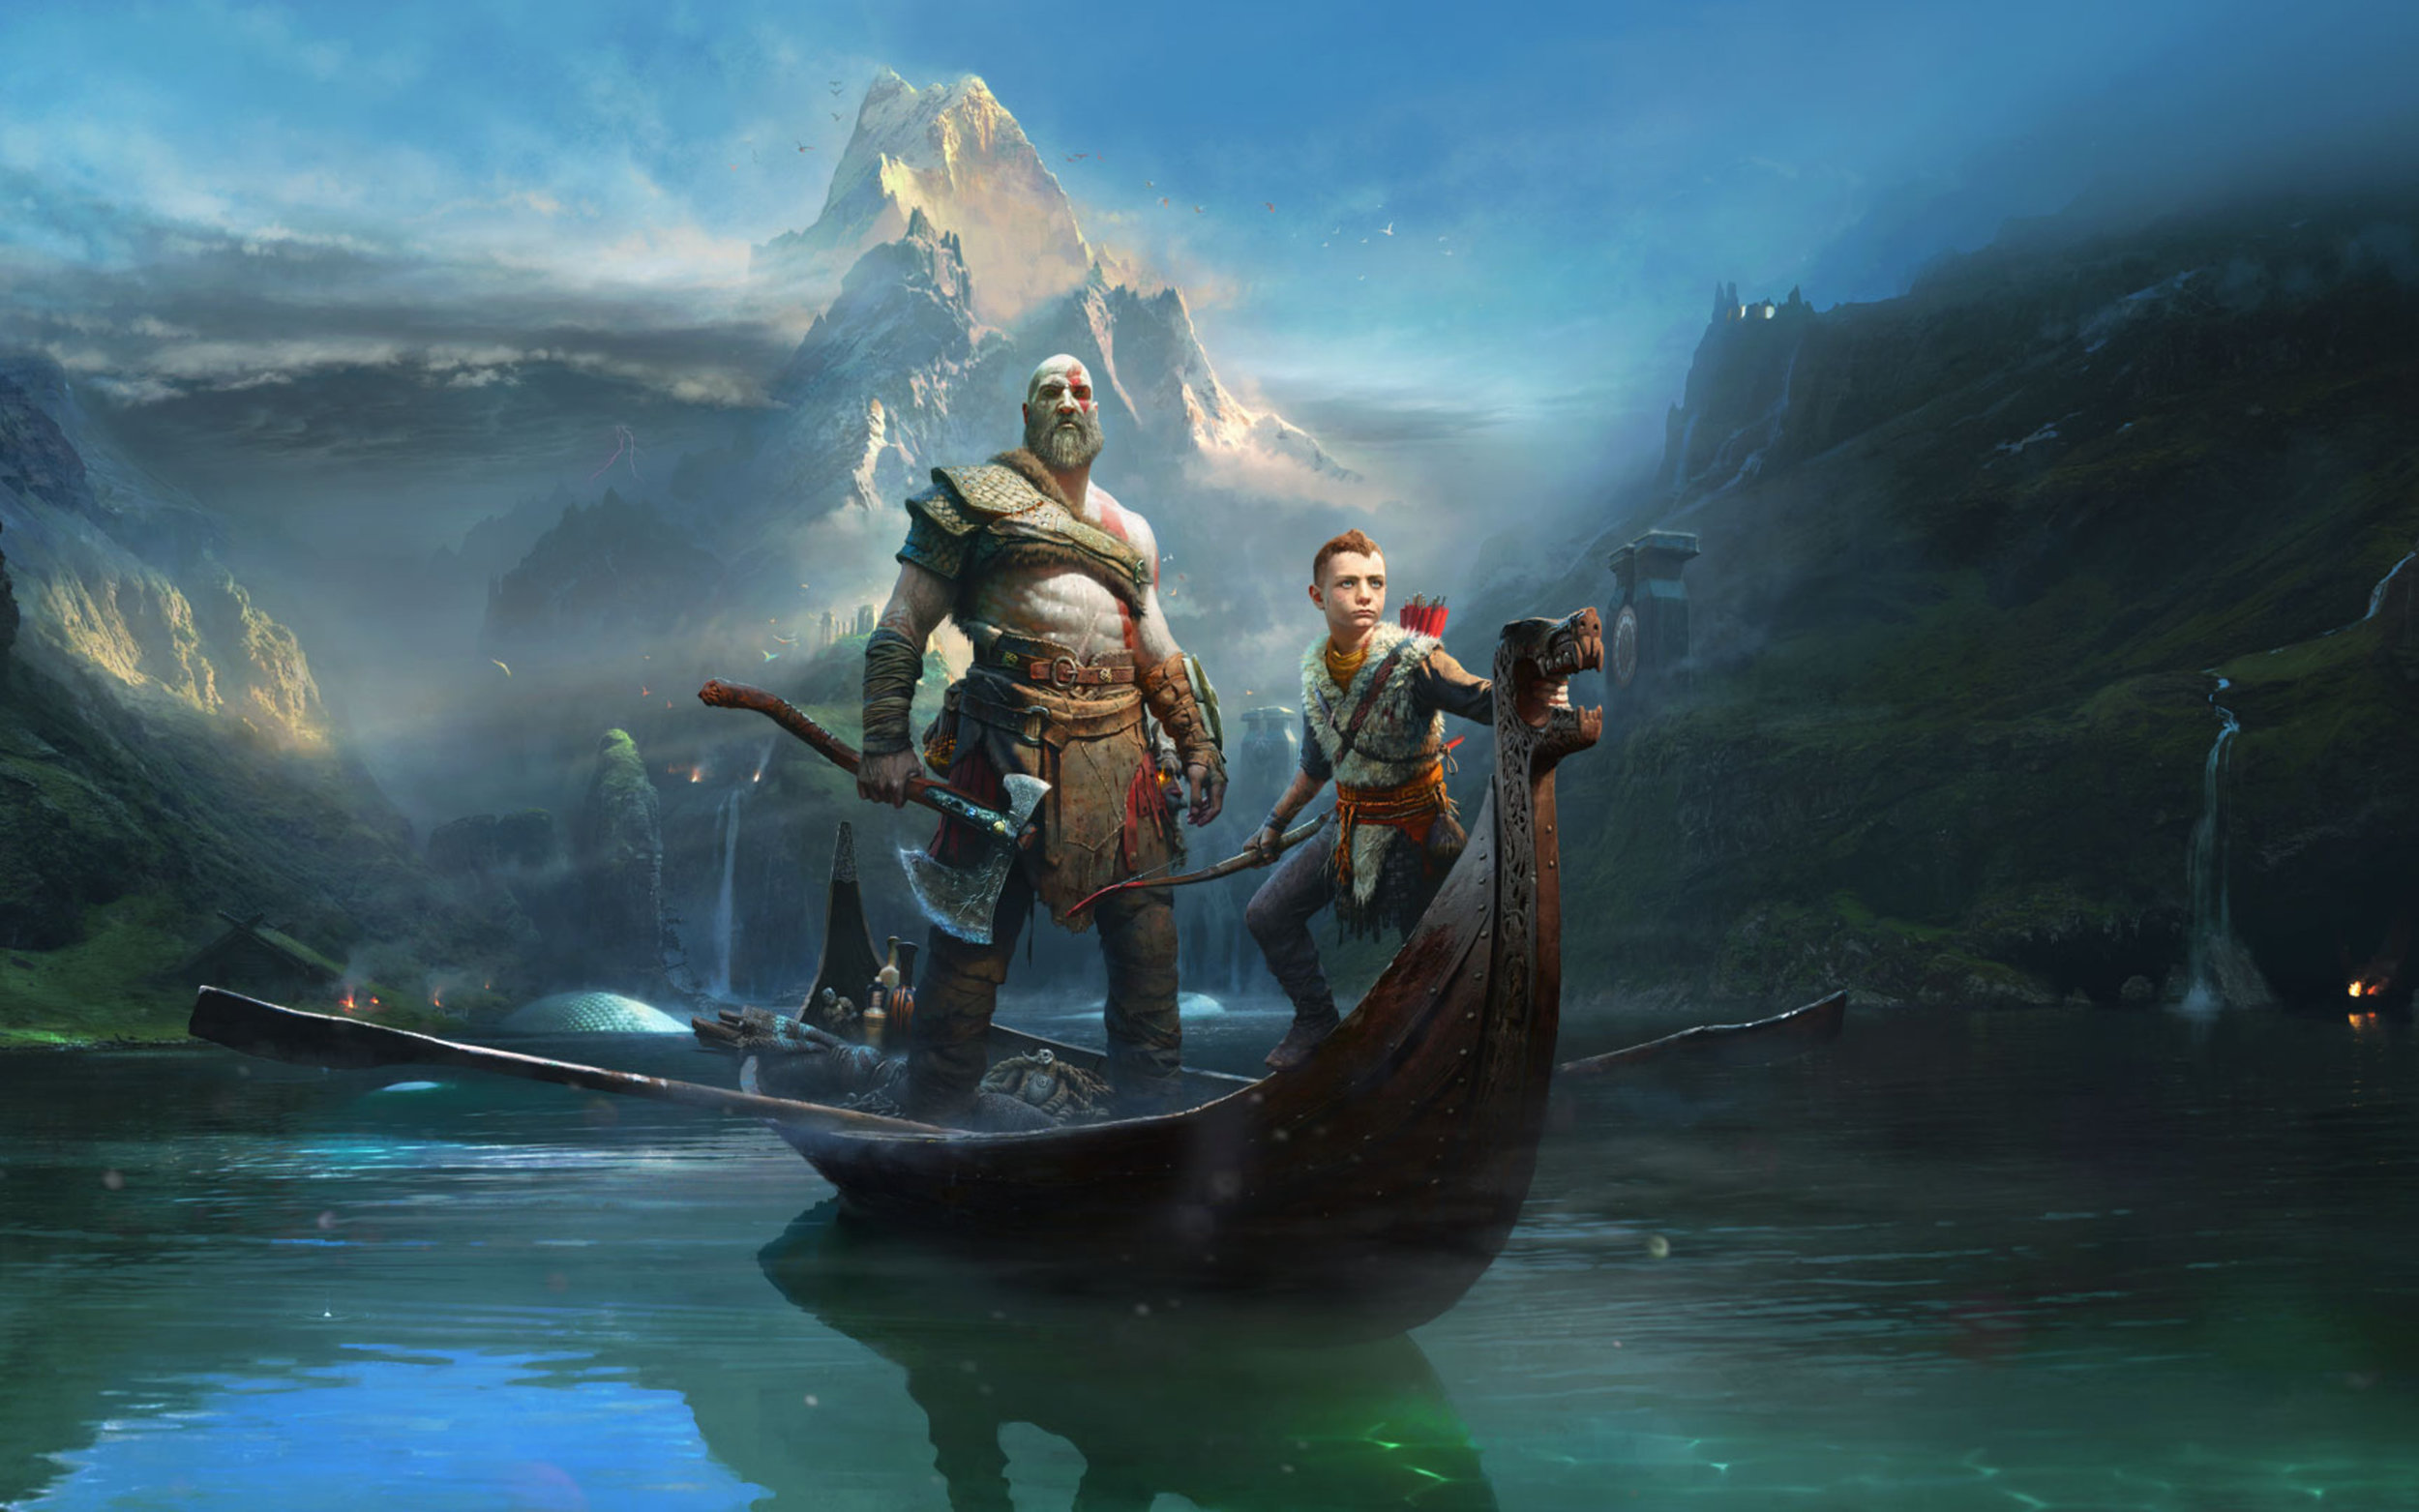 A new beginning... - Kratos returns triumphantly in a game that moves beyond previous series trappings, and elevates the whole experience to a whole other level beyond what it was.